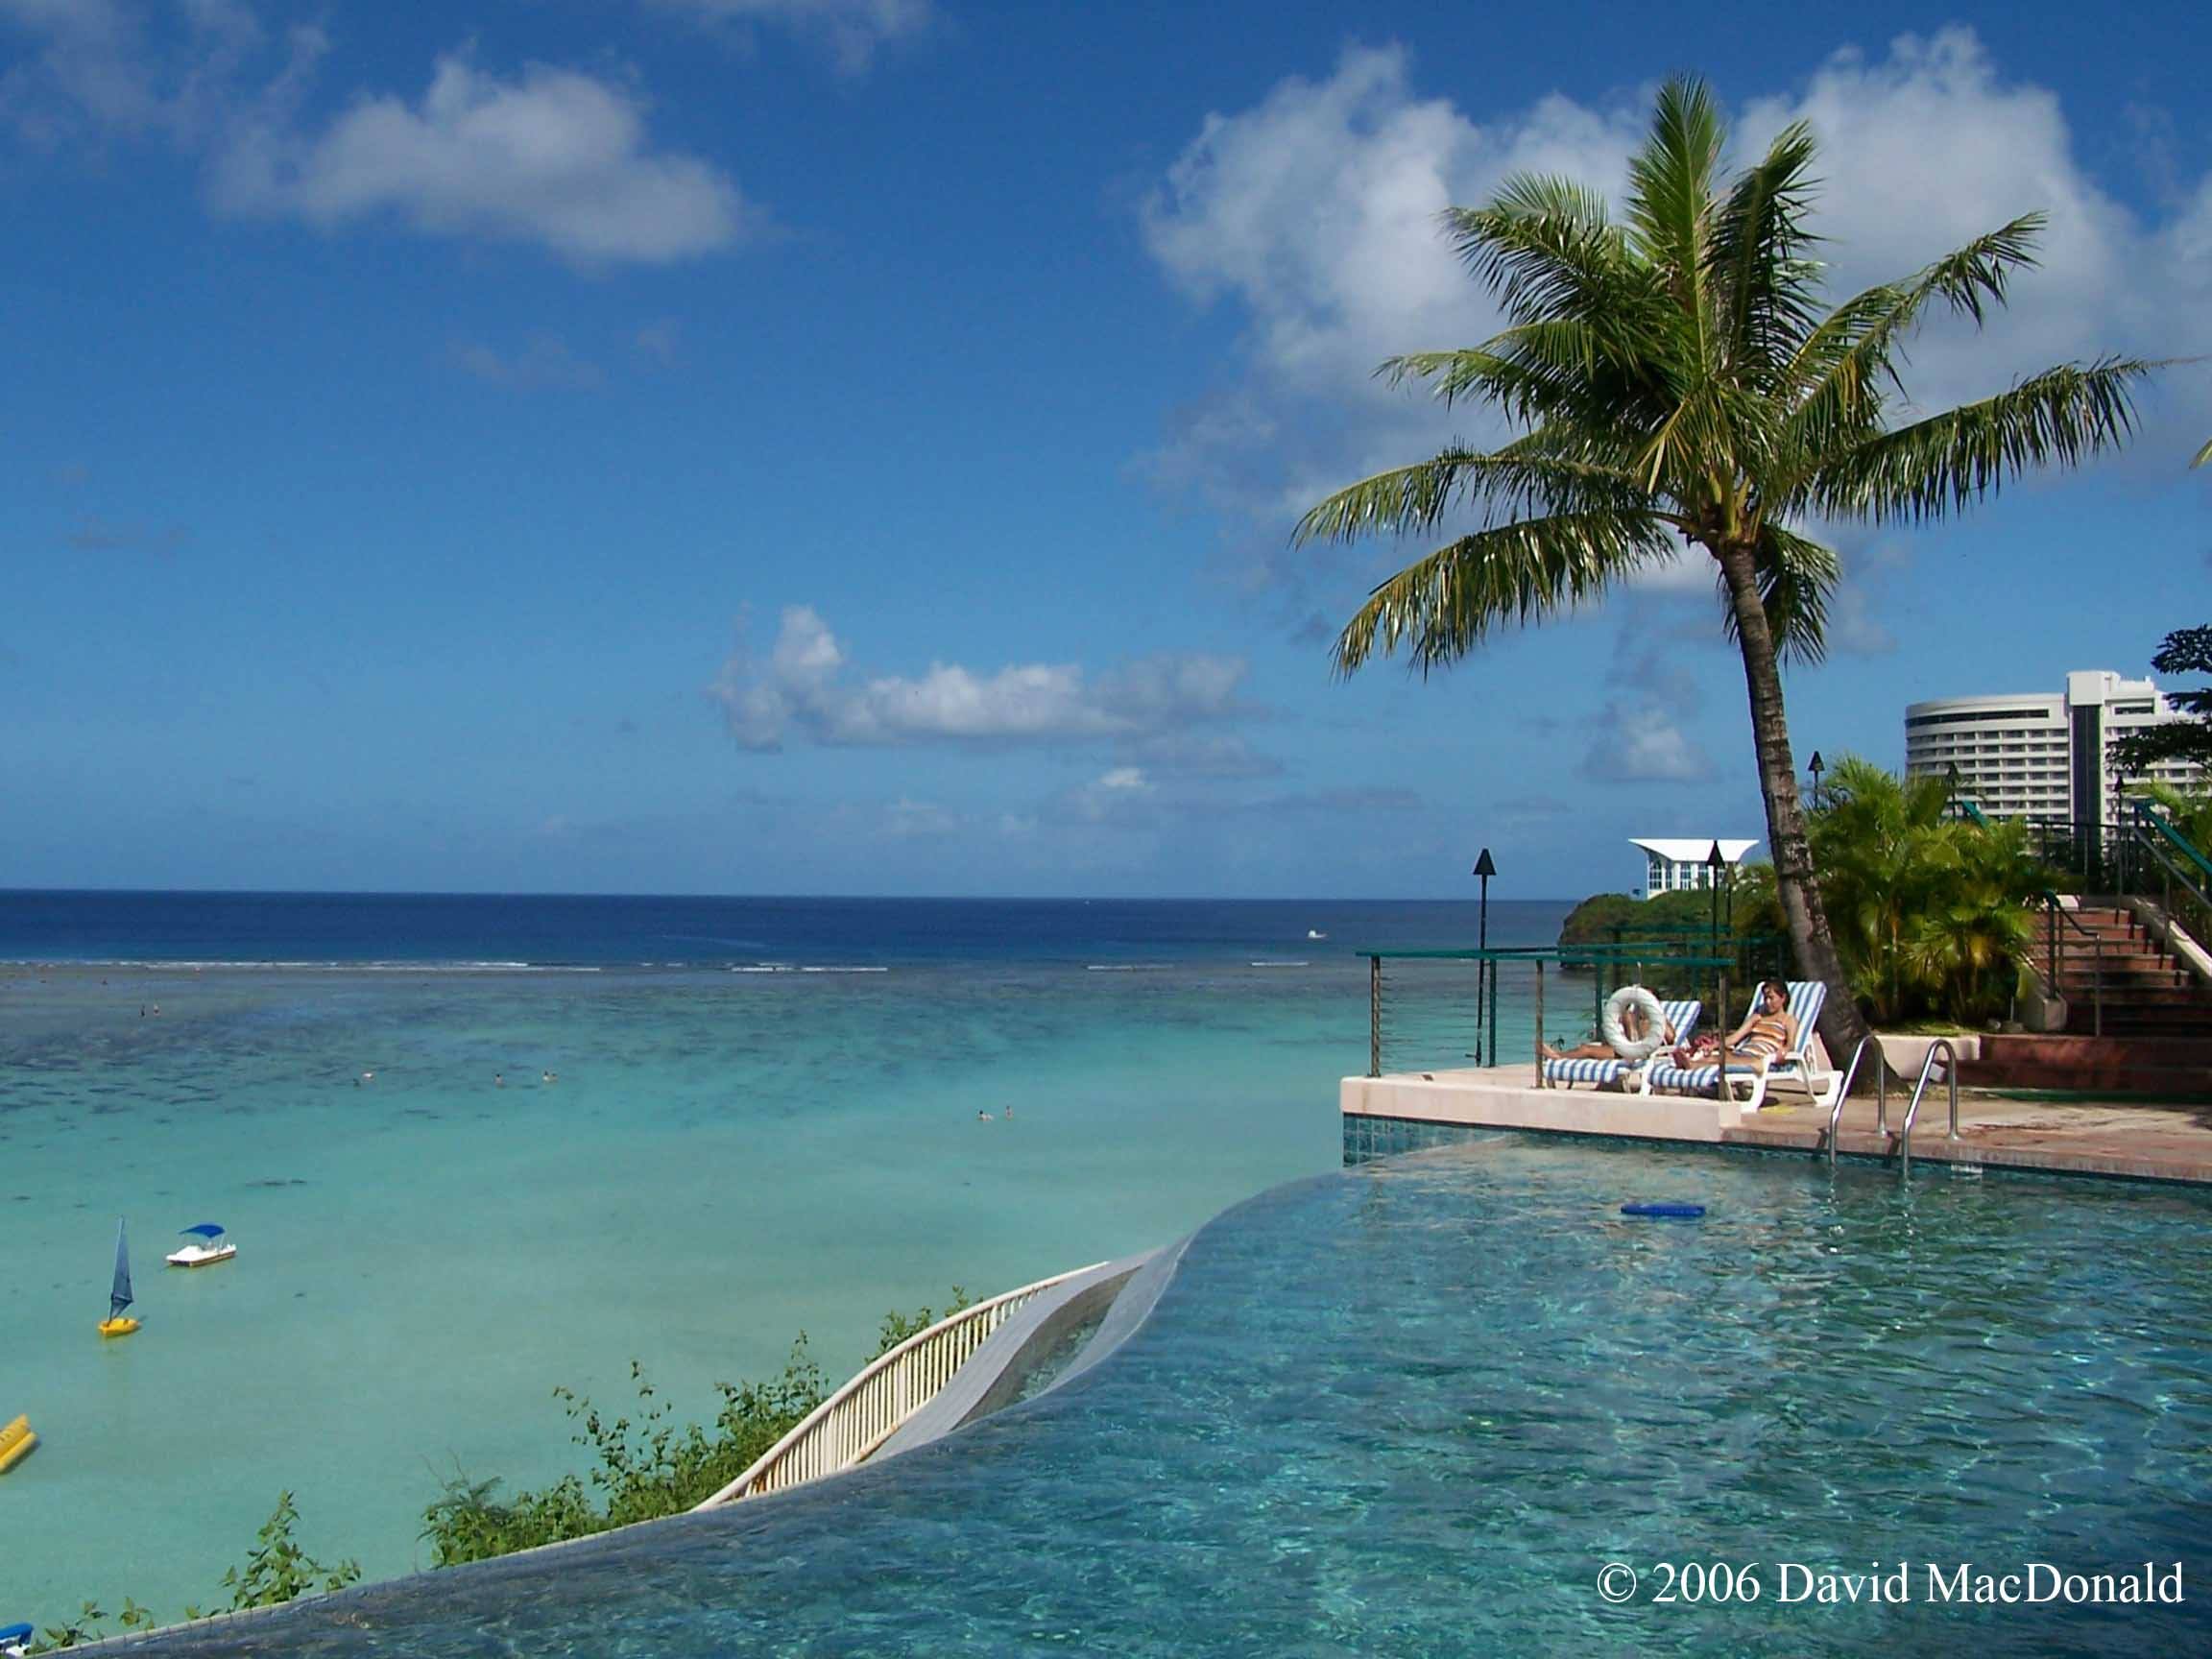 Pacific Ocean from the Guam Reef Hotel swimming pool